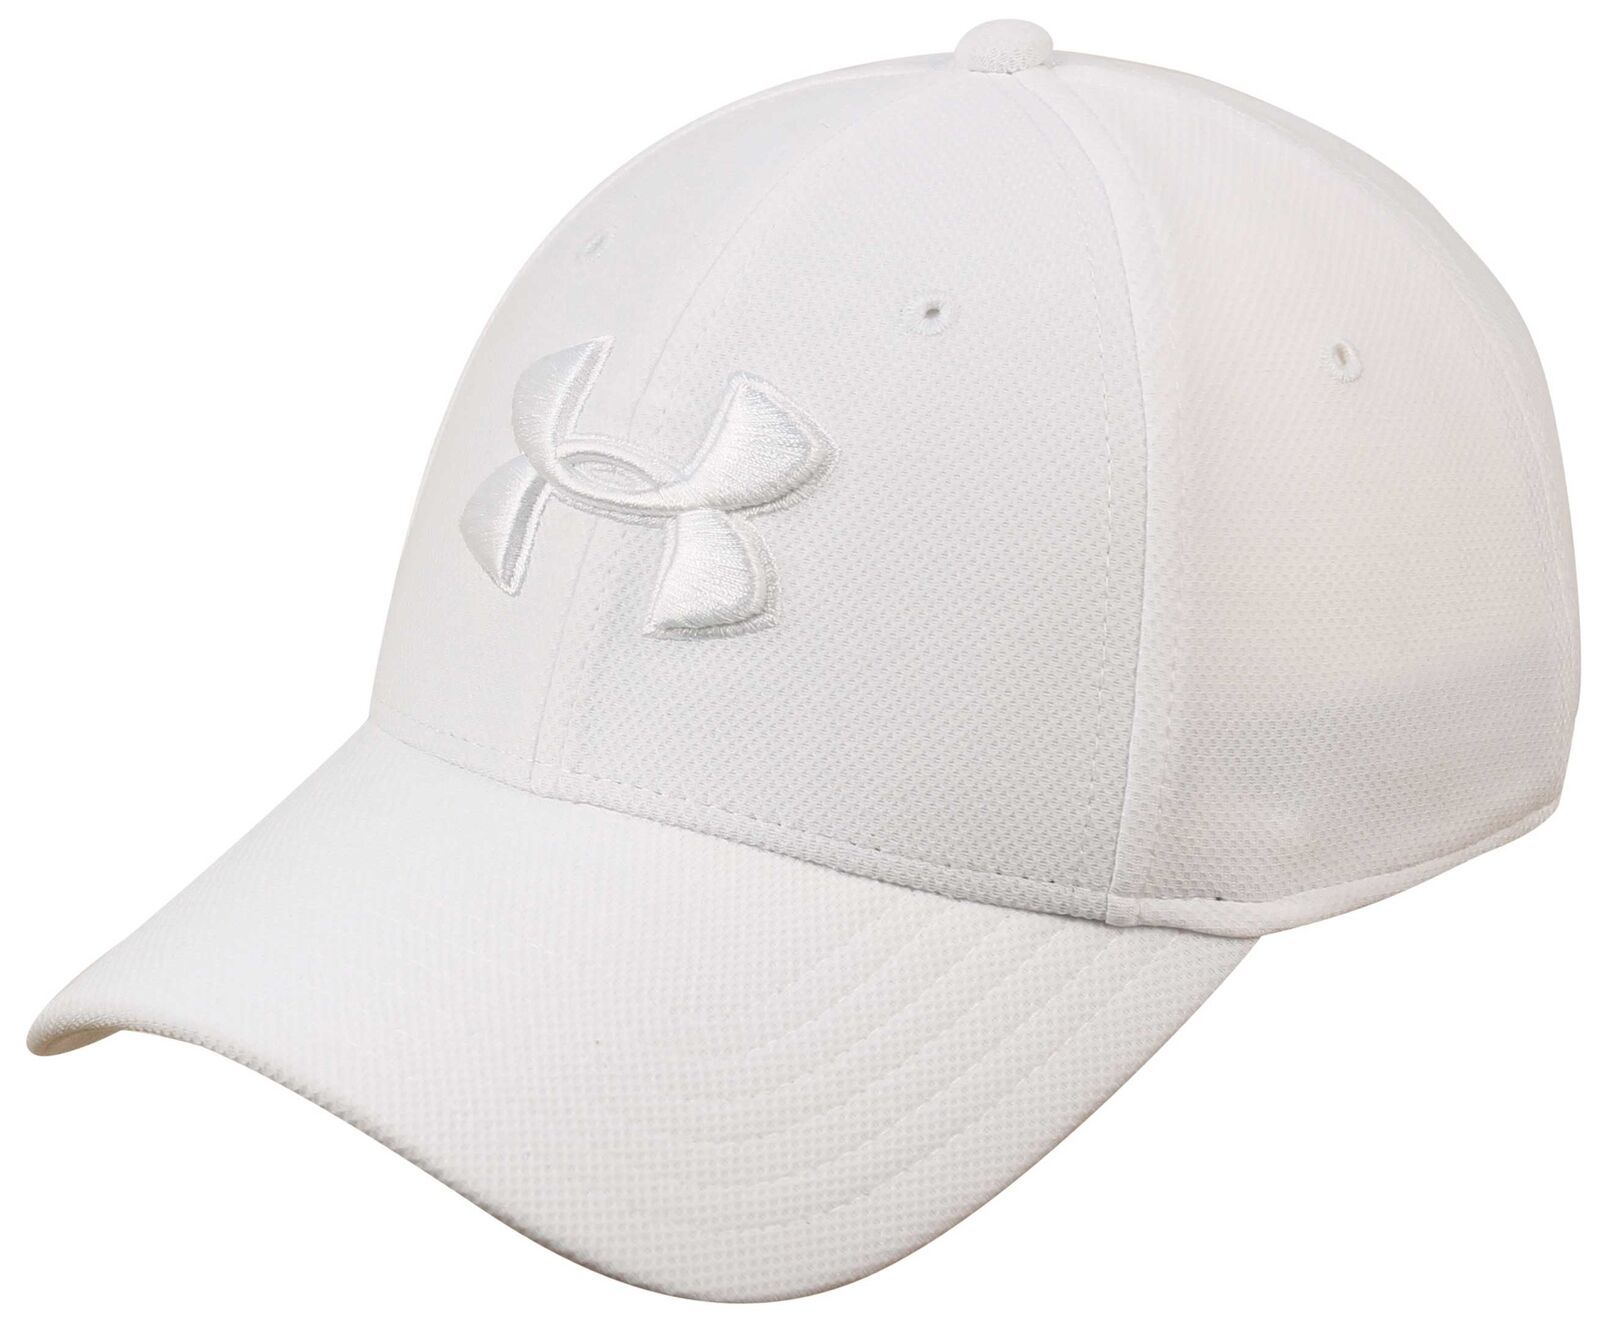 Under Armour Blitzing 3.0 Hat - New White / White - New - c6f5d1